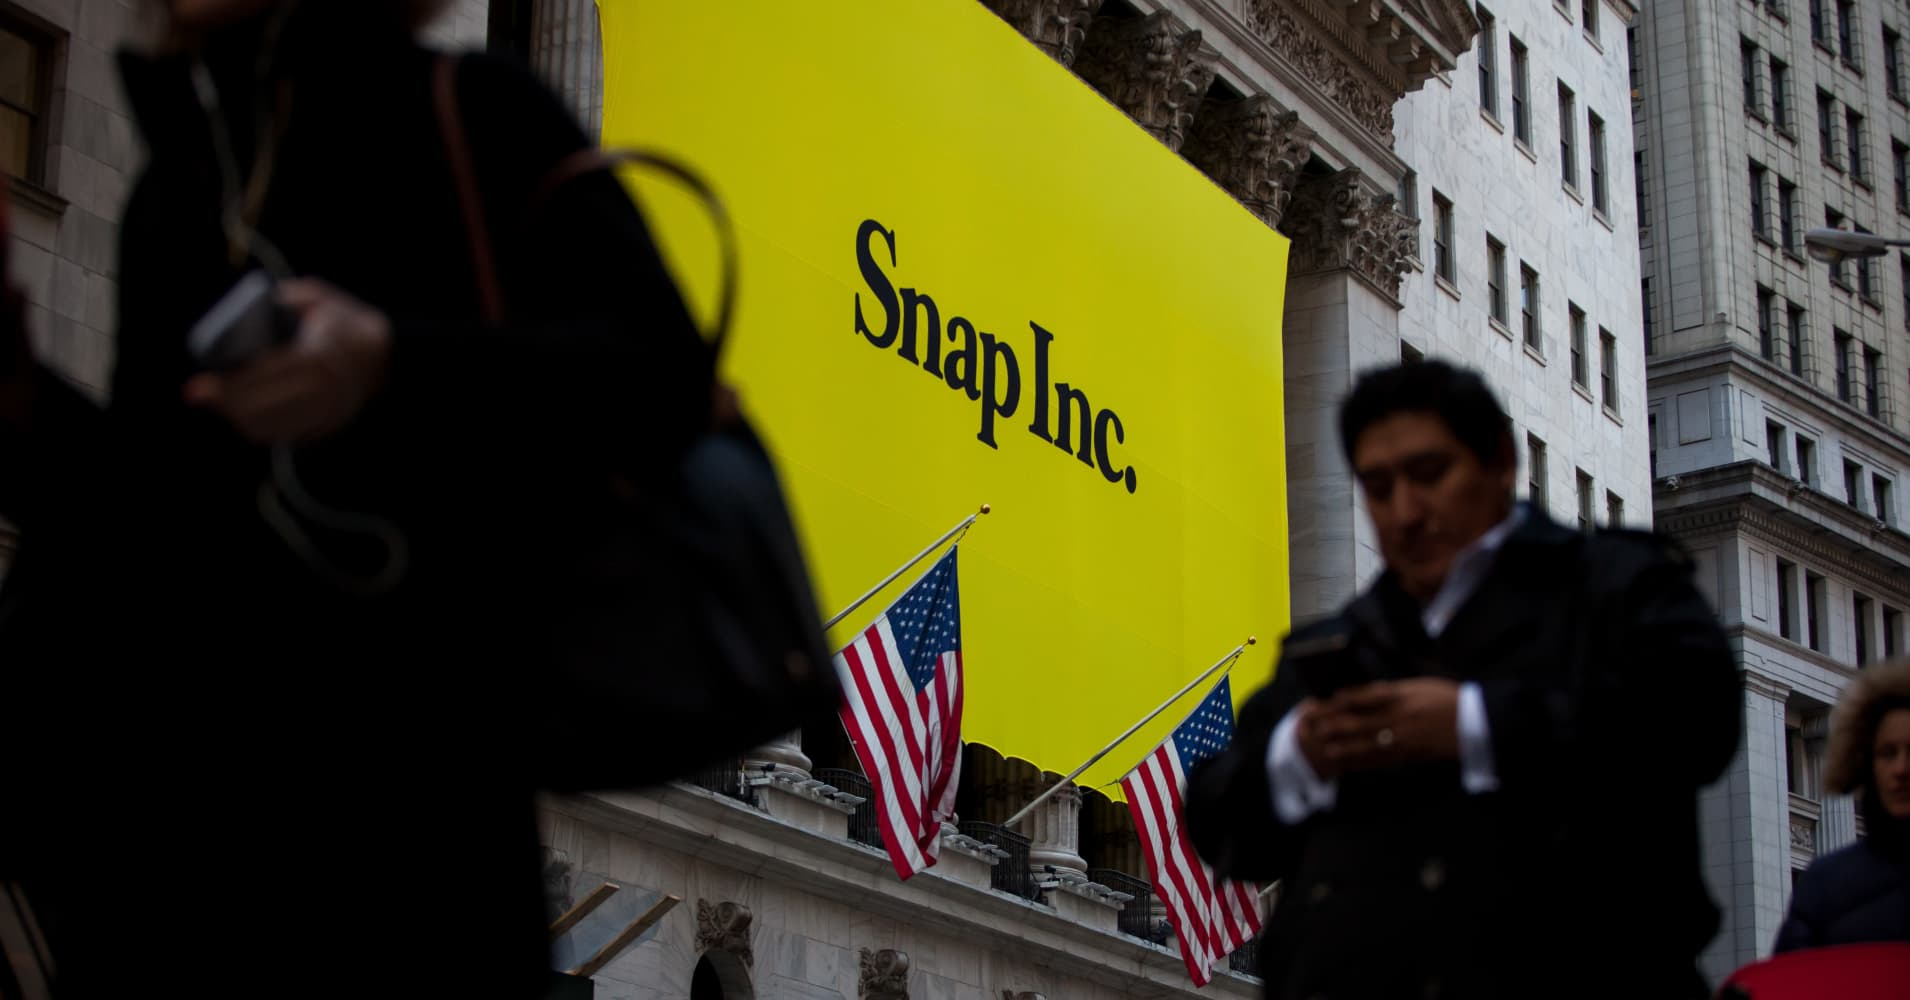 Snap shares rise after analyst upgrade, saying recent executive hires will improve results